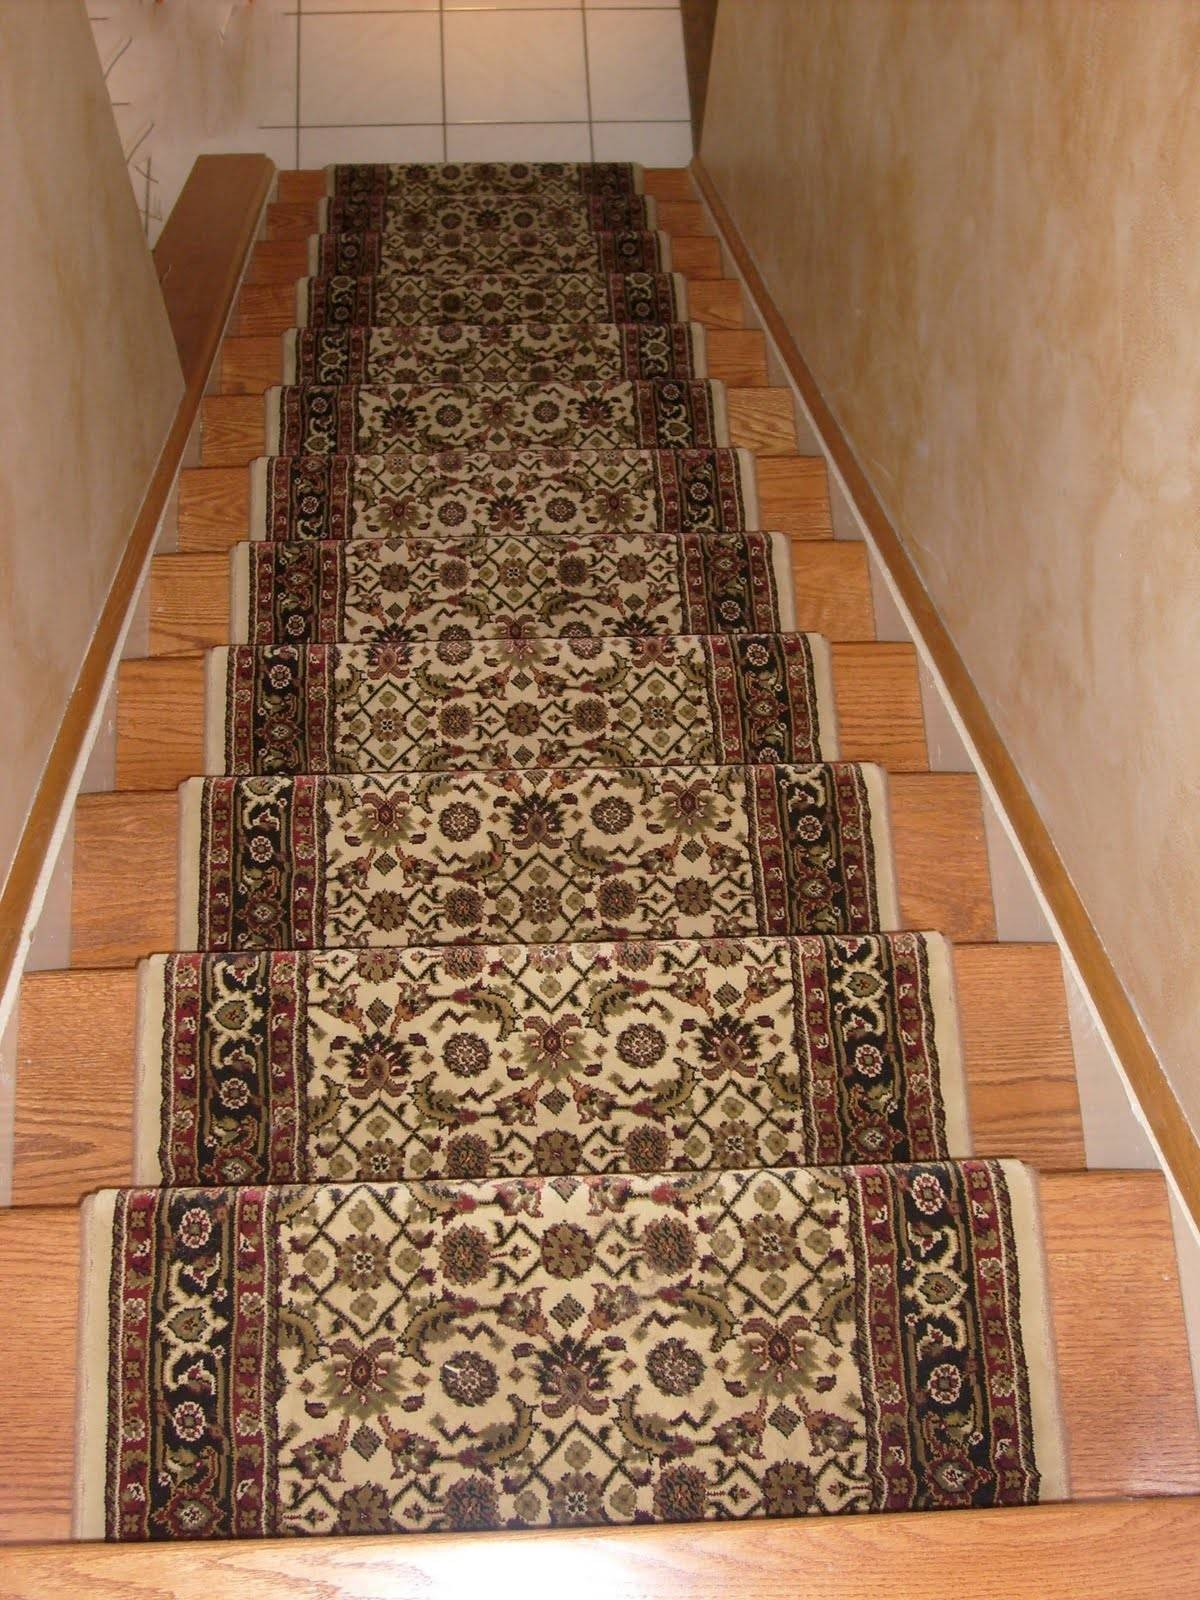 19 Fresh Rugs For Stairs Gabe Jenny Homes   Oriental Rug Runners For Stairs   Design Stair   Basement Stairs   Area Rugs   Bucks County   Salem Ma